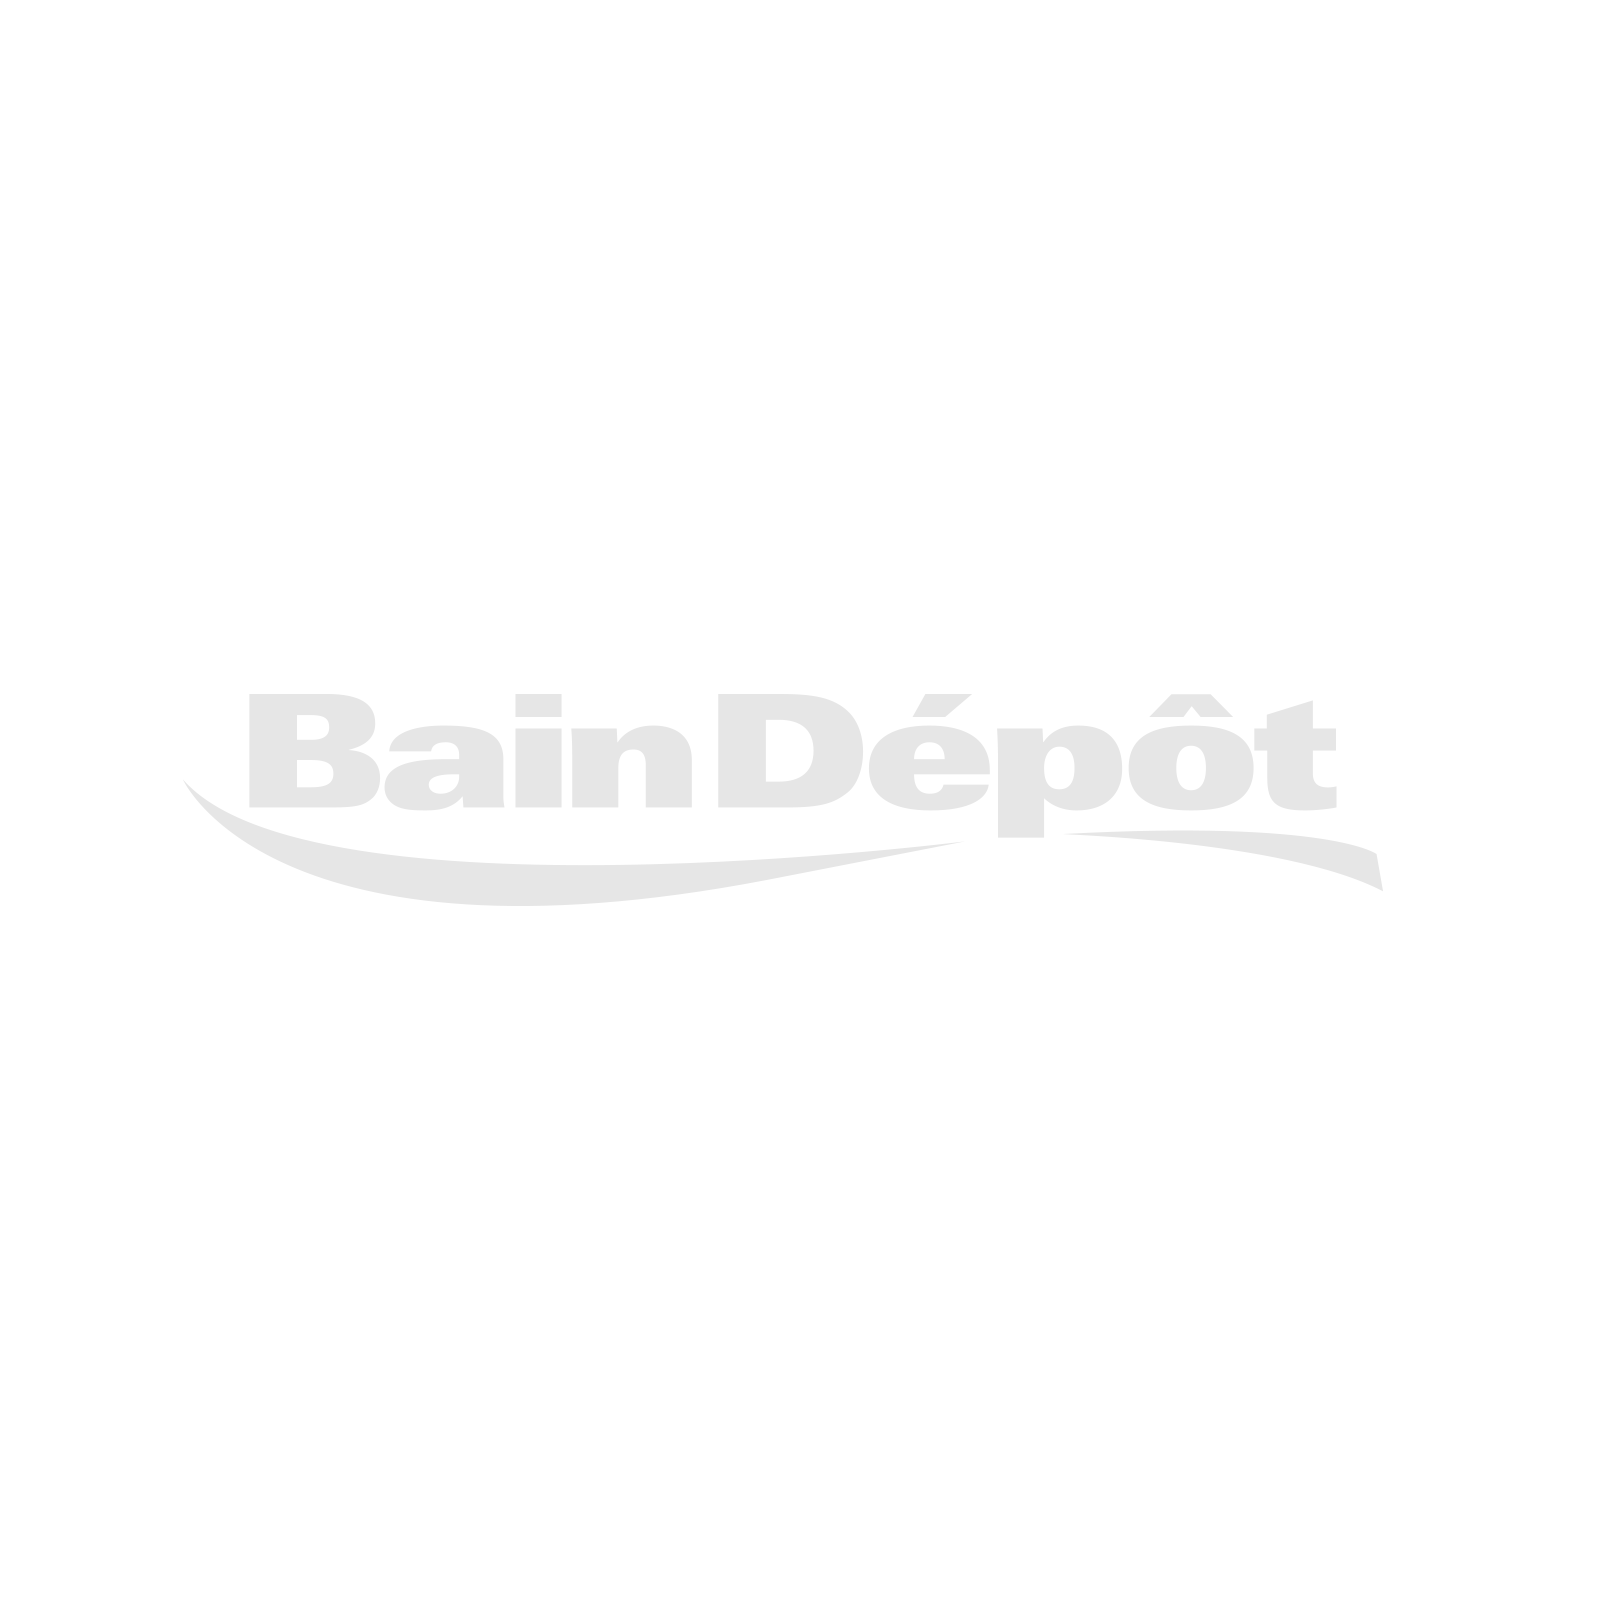 Ensemble d'installation de drain drop-in pour bain autoportant